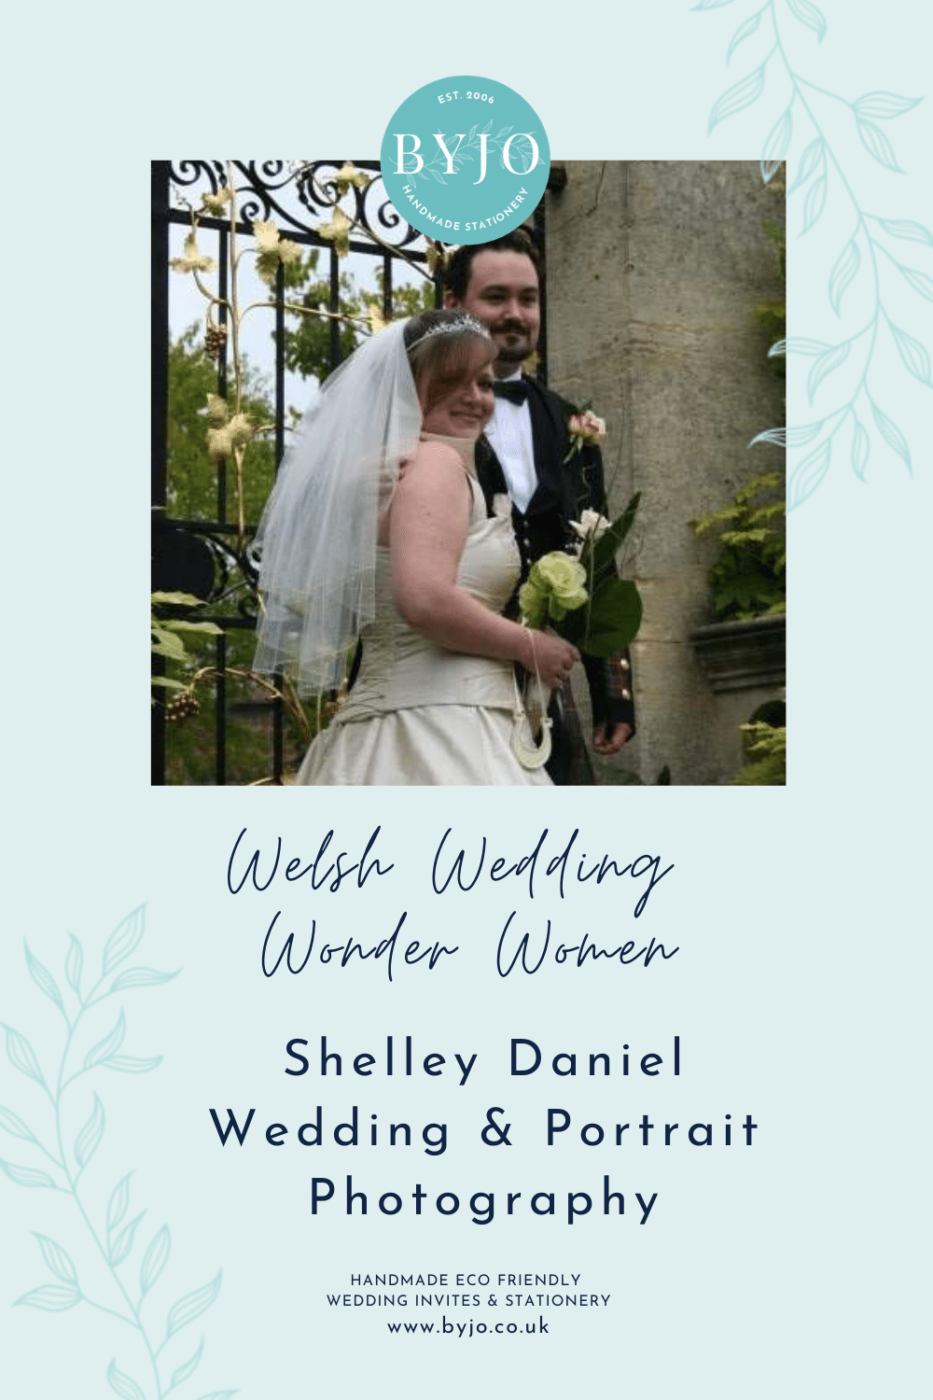 A graphic showing Welsh wedding supplier photographer Shelley Daniel